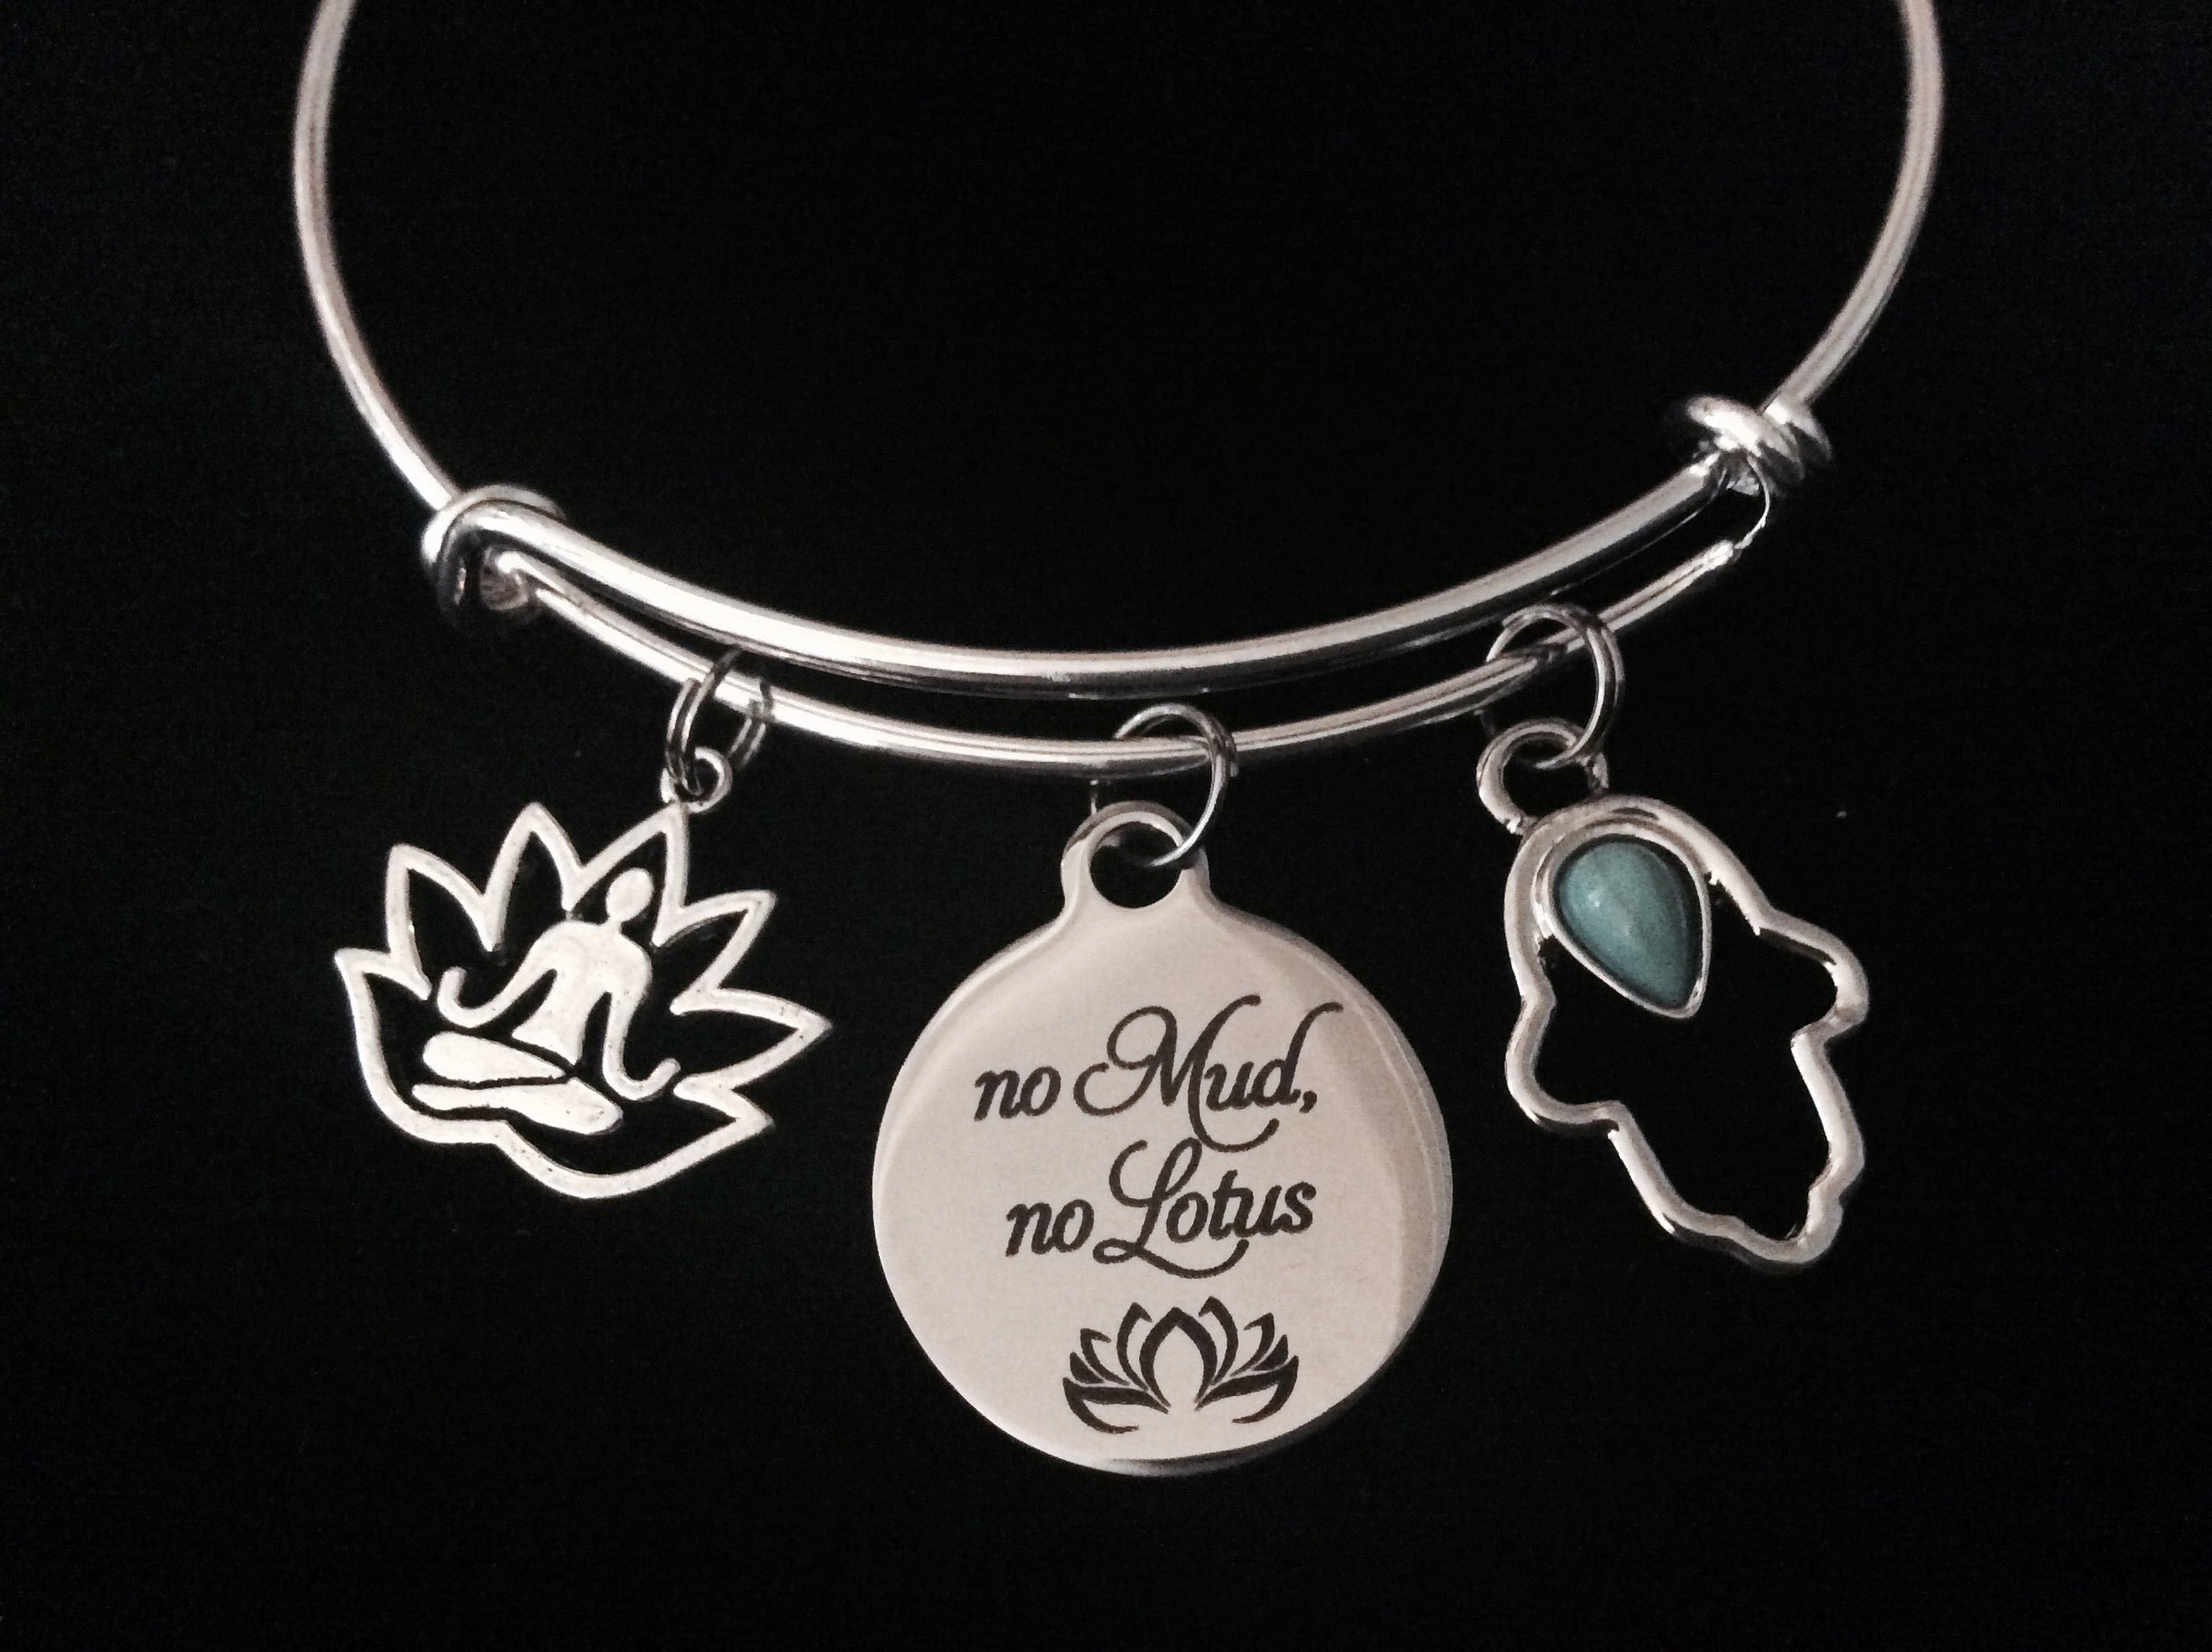 No Mud Lotus Hamsa Hand Buddha Adjustable Bracelet Expandable Charm Bangle Silver Yoga Gift New